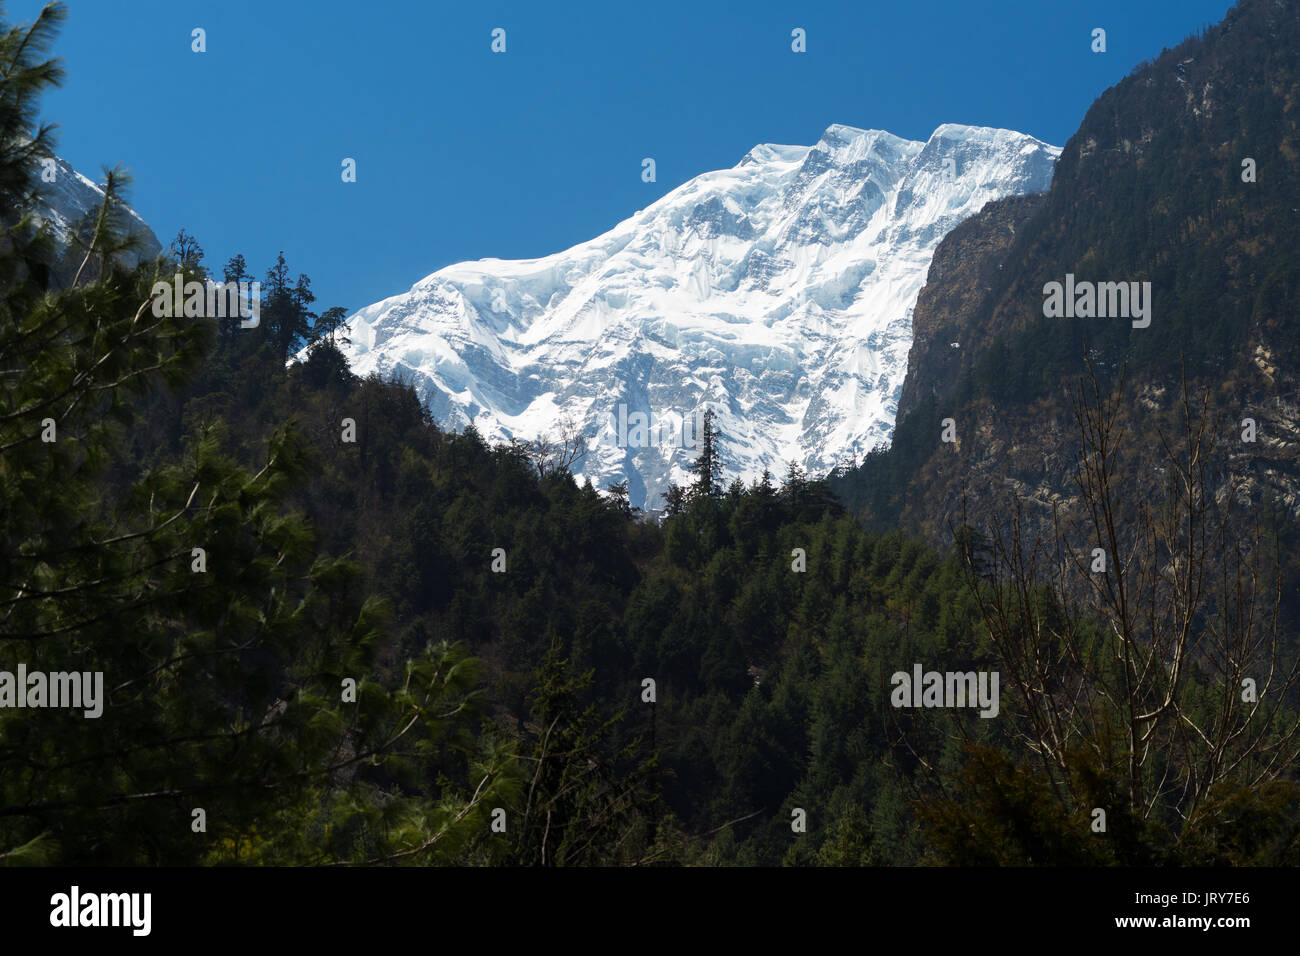 Lamjung Himal seen from Chame, Annapurna region, Nepal. - Stock Image